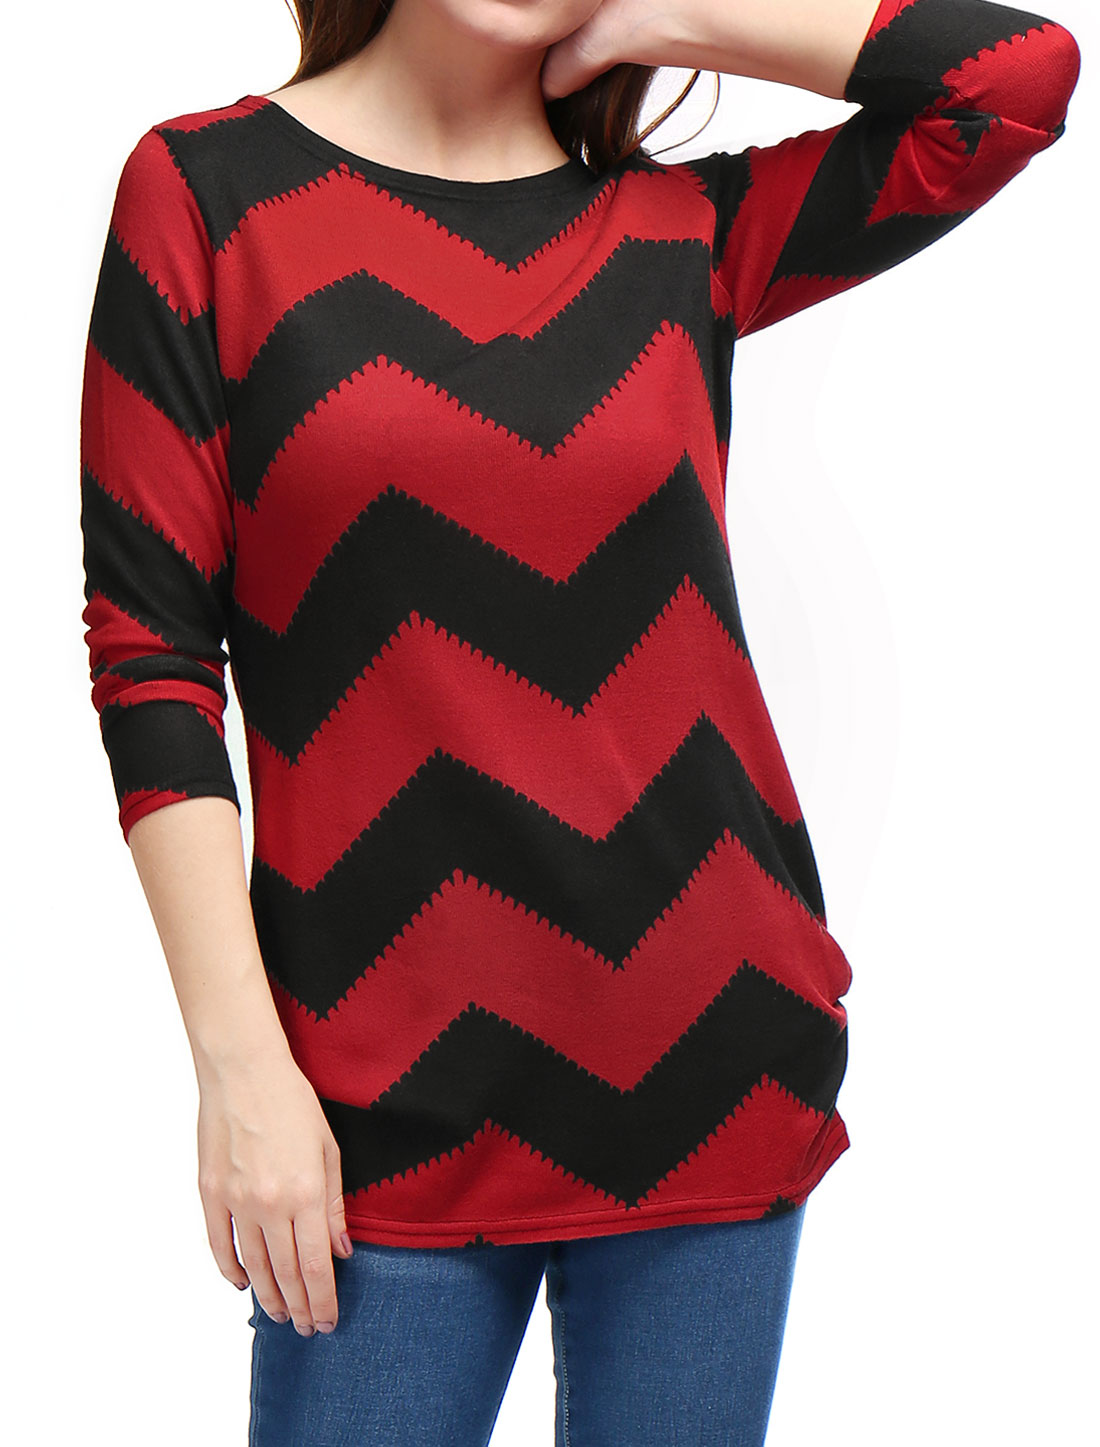 Woman Zig-Zag Pattern Knitted Relax Fit Tunic Top Black Red XS